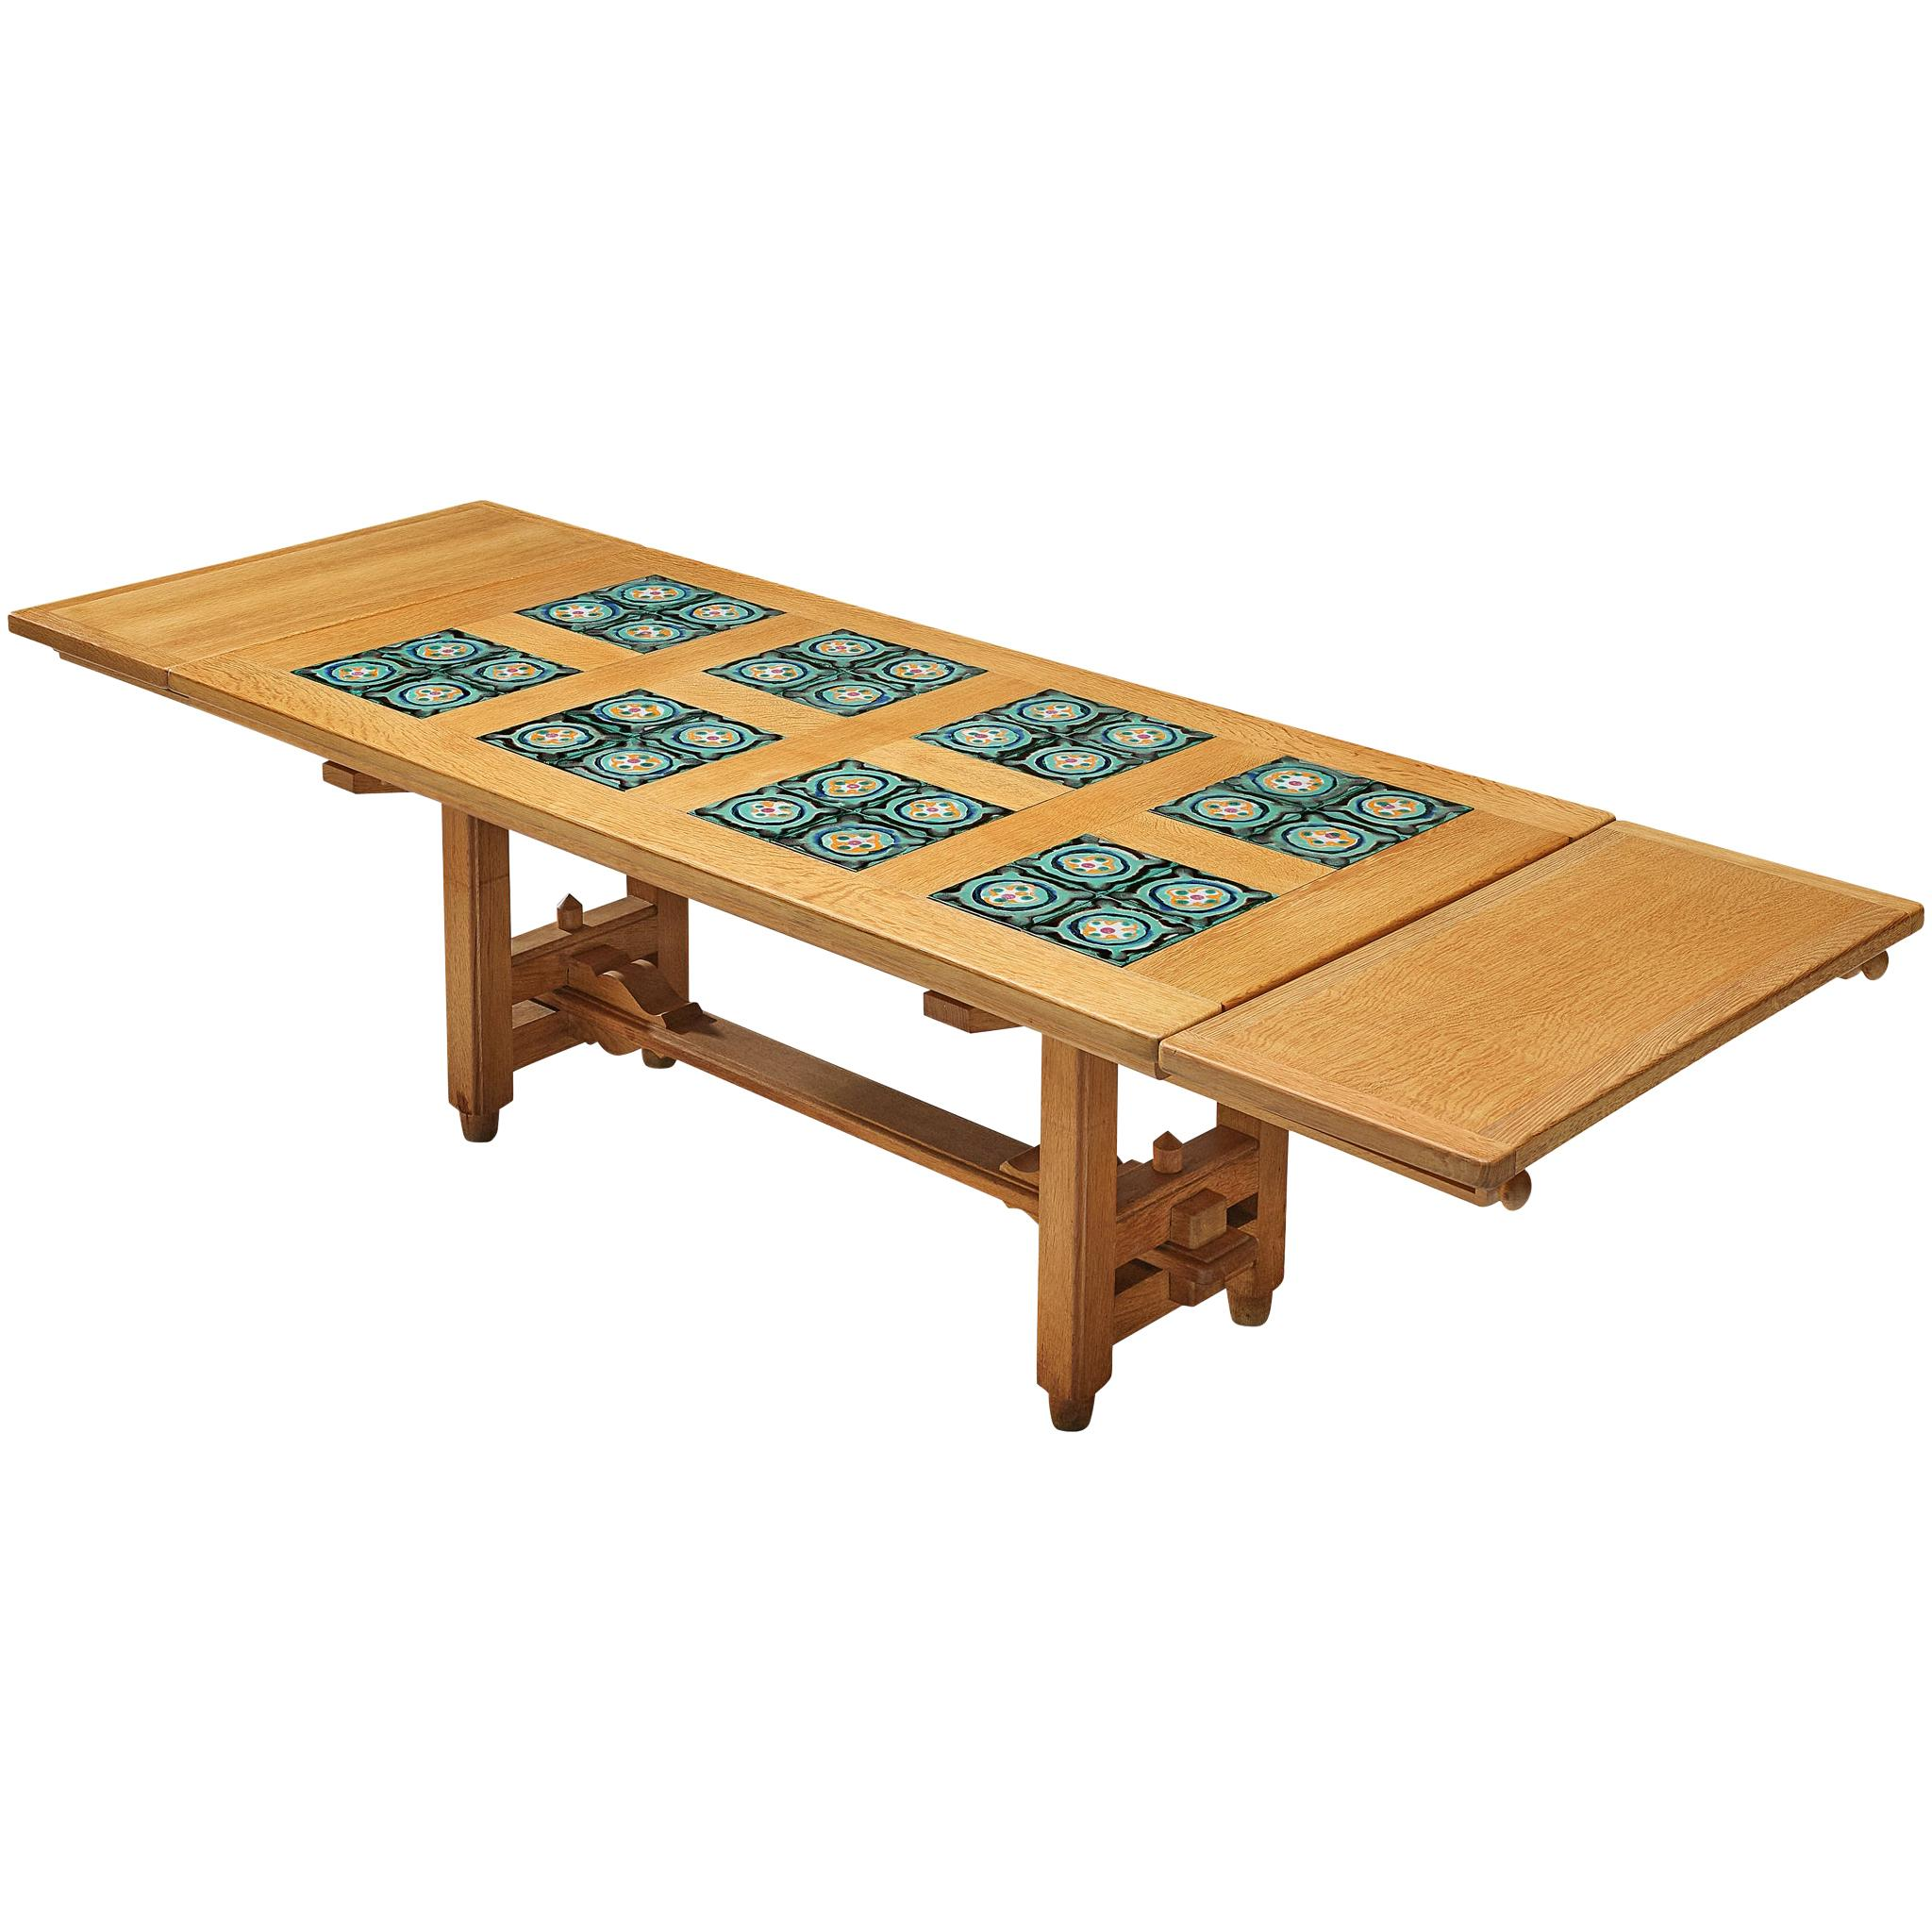 Guillerme et Chambron Extendable Dining Table with Ceramics